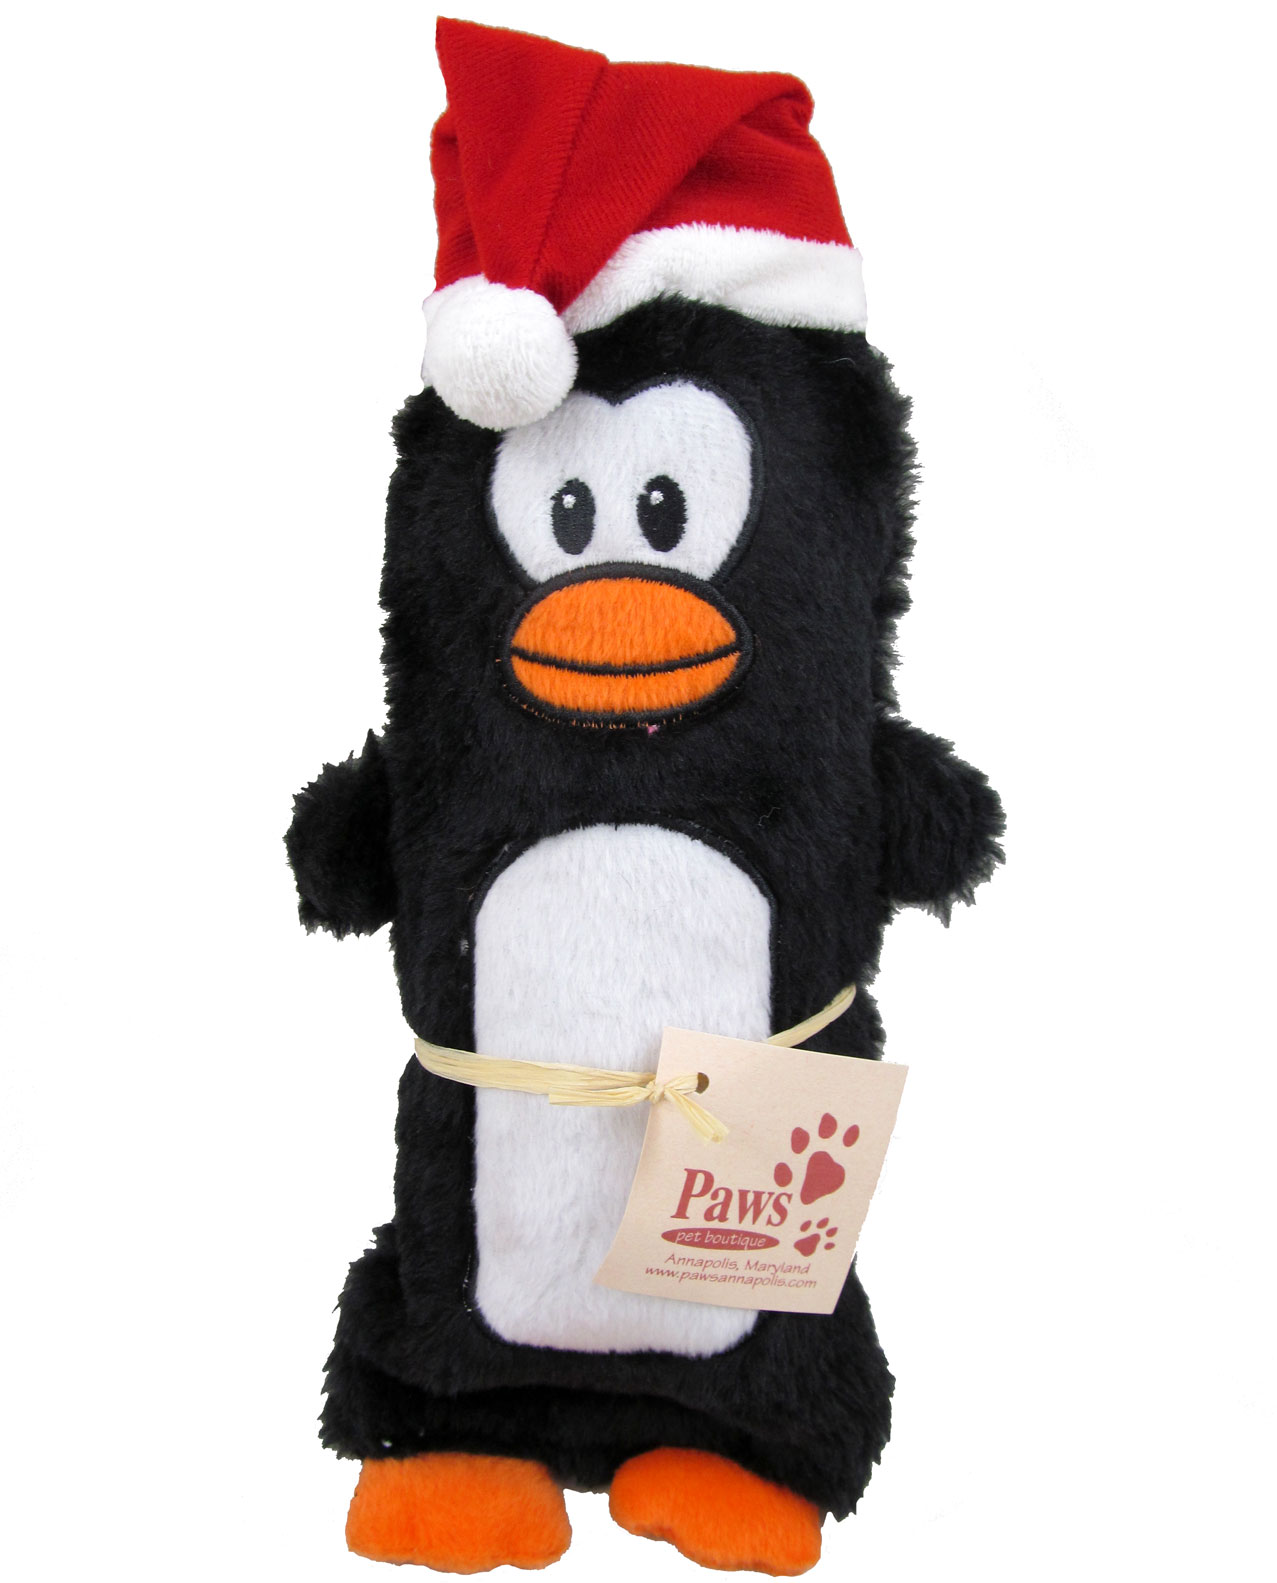 penguin-santa-bottletoyw.jpg